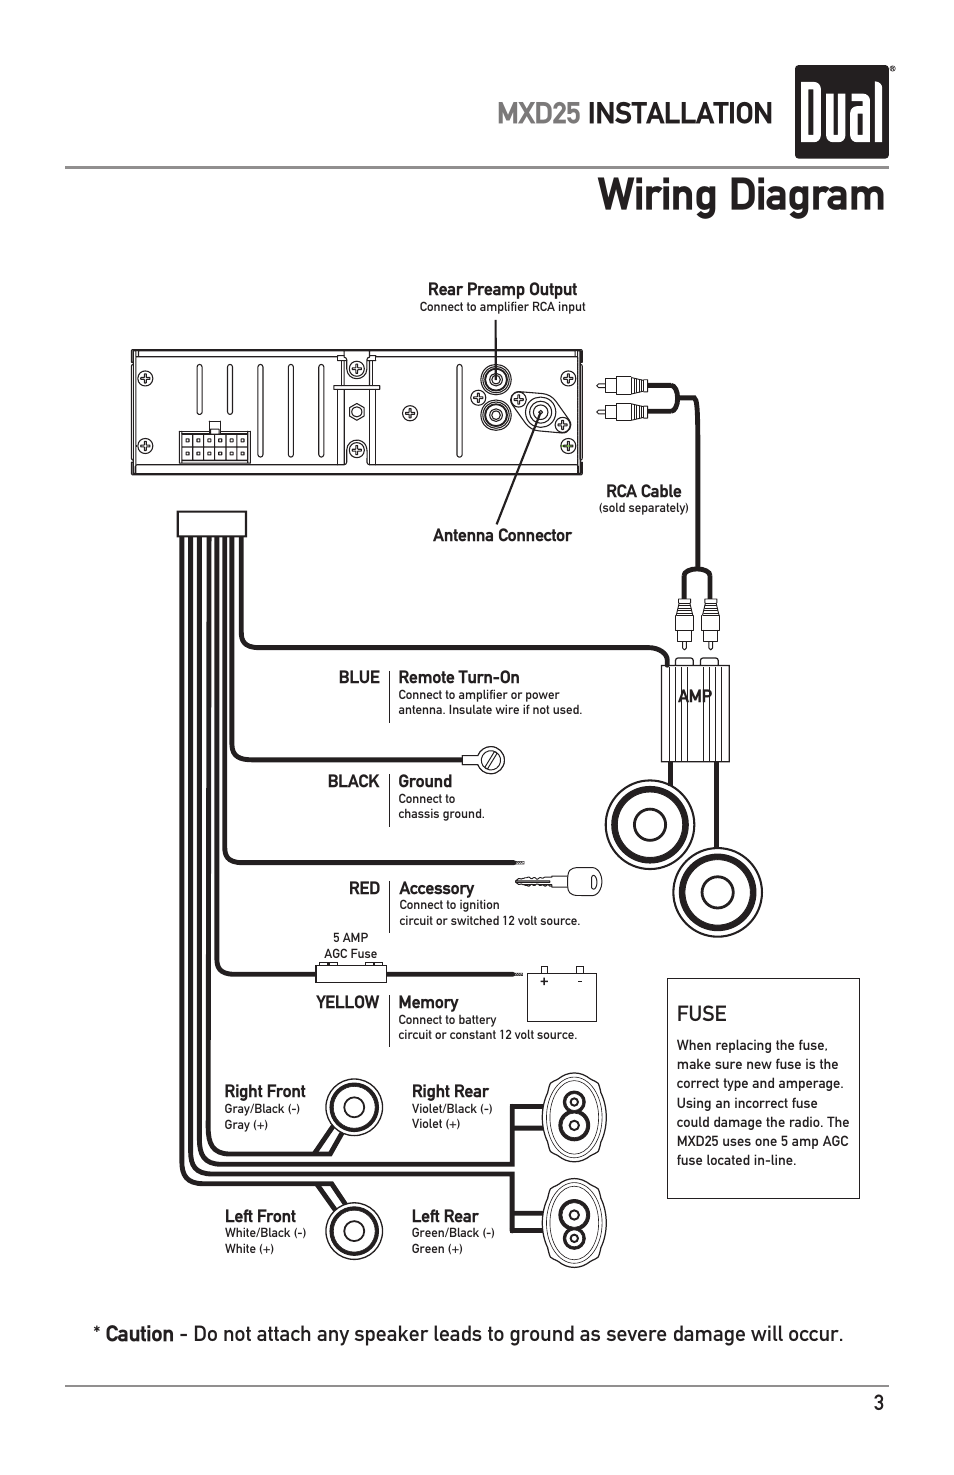 Wiring Diagram Mxd25 Installation Fuse